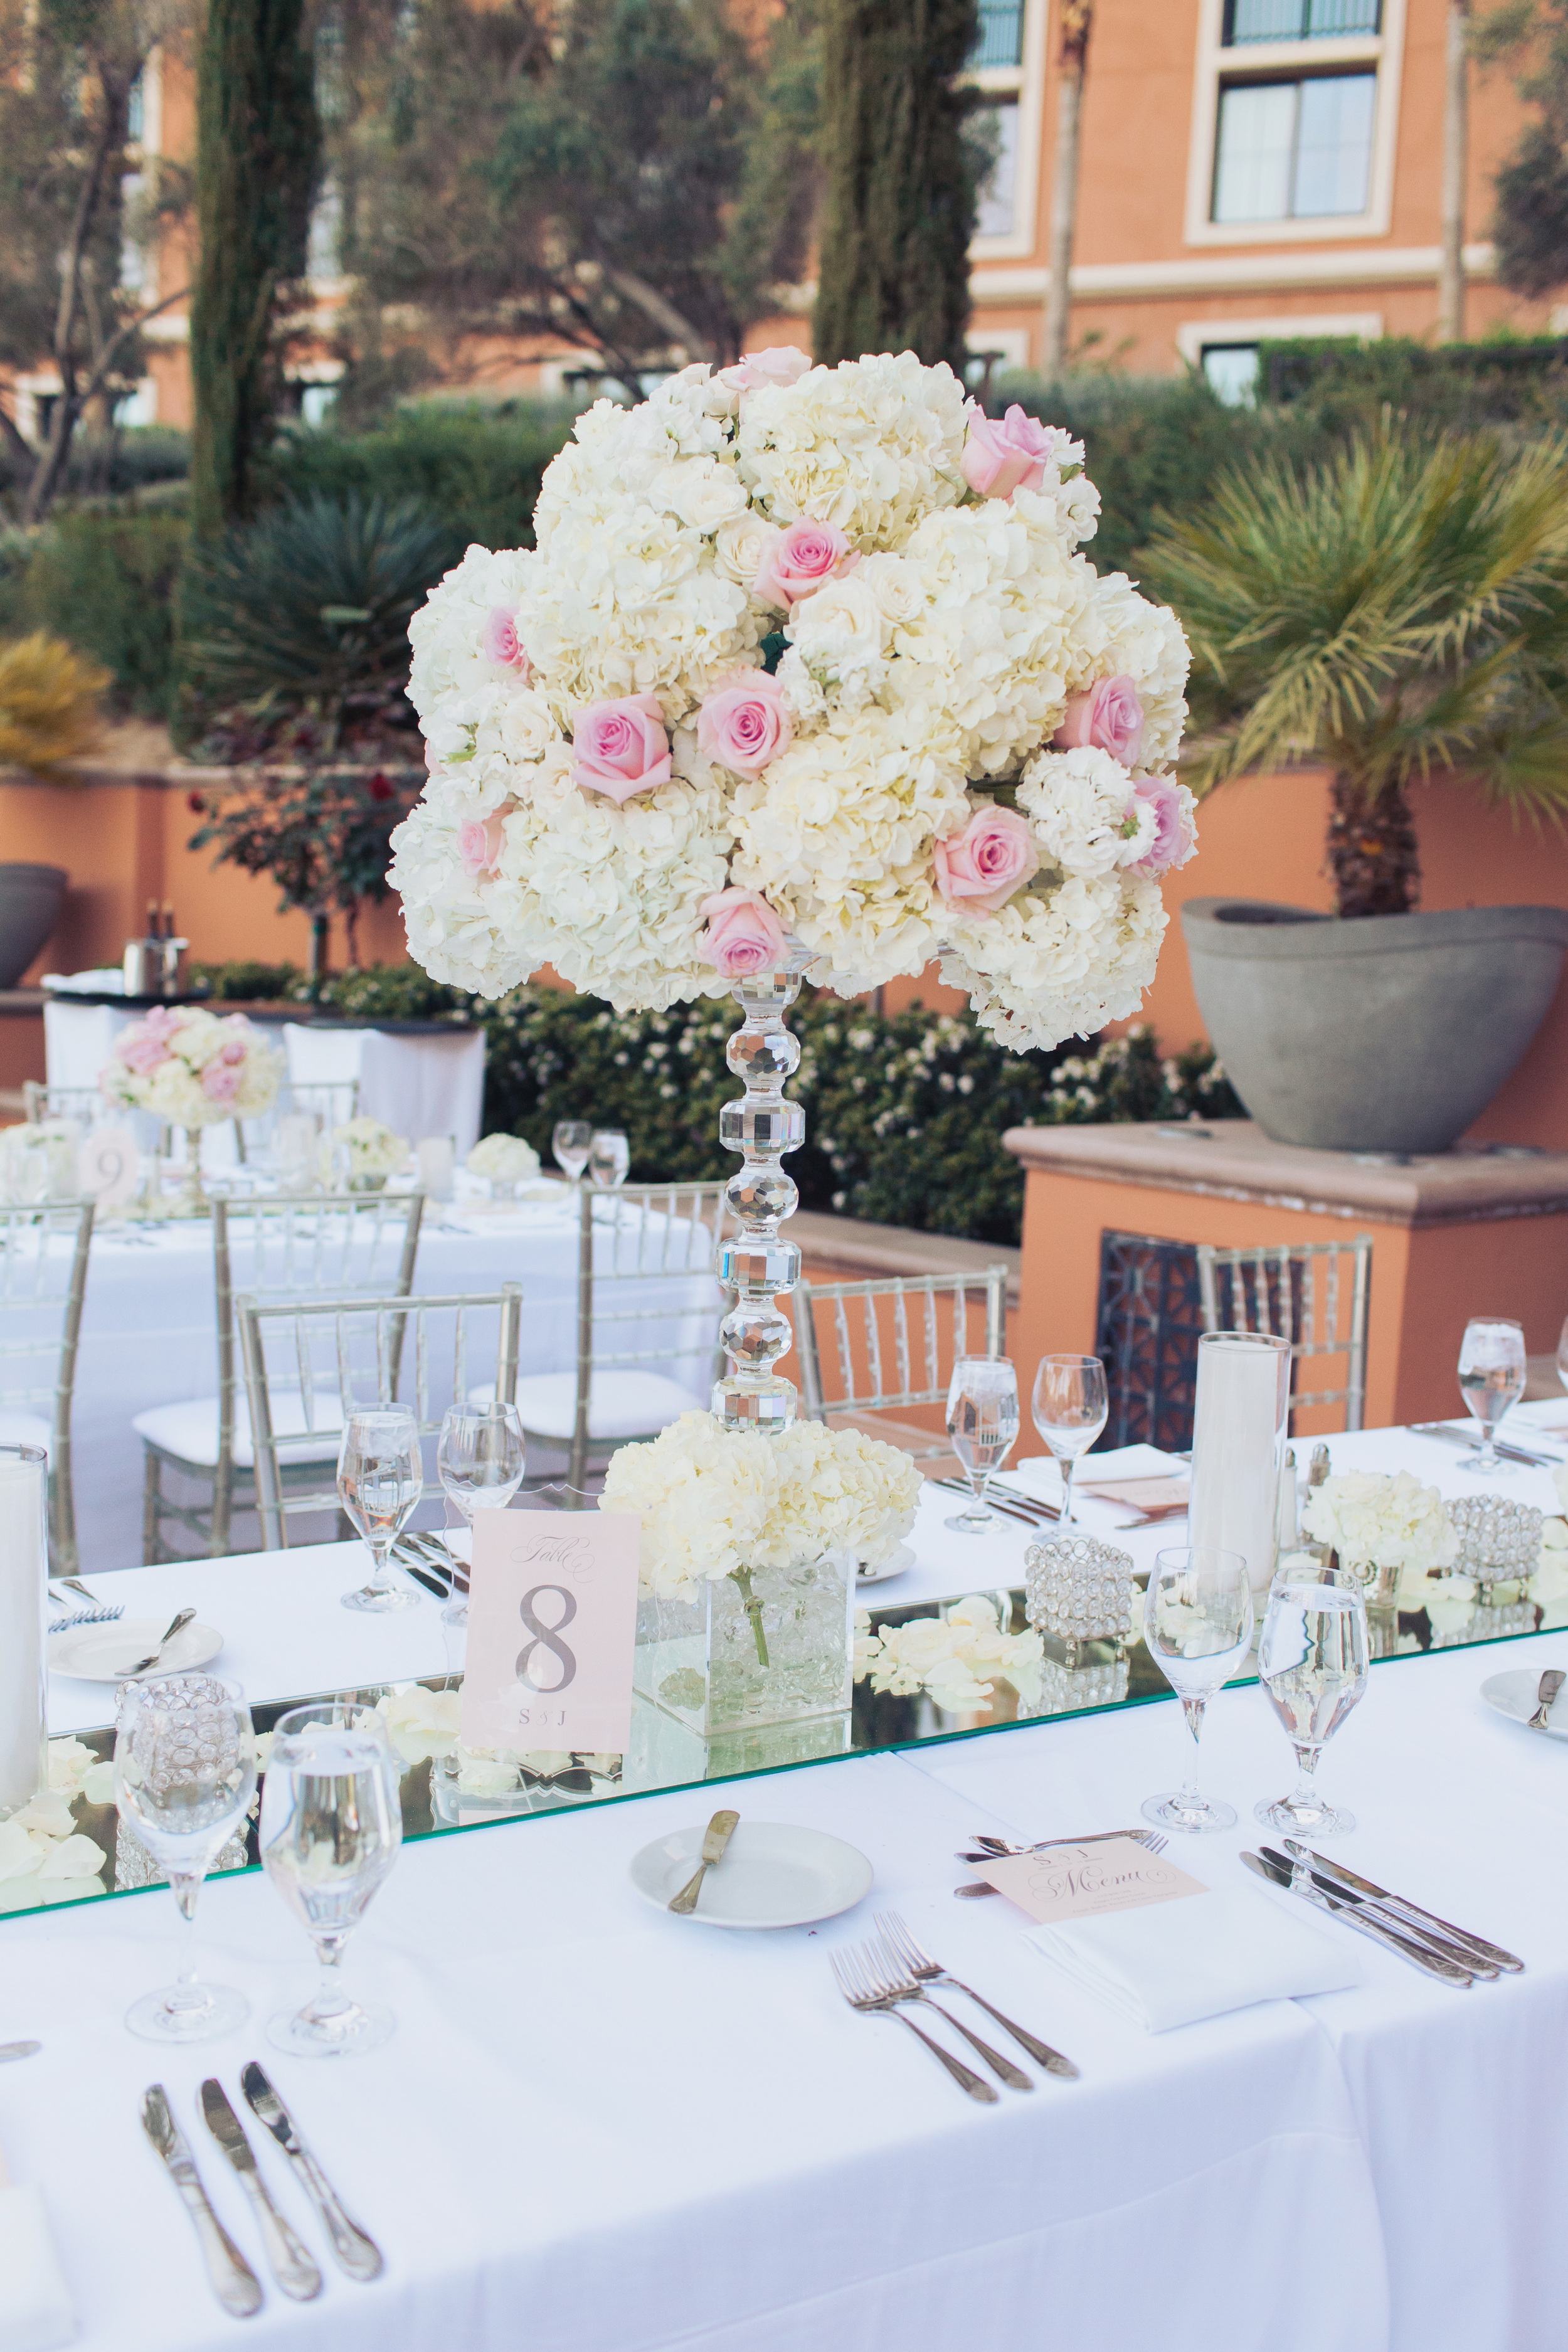 Cut crystal topiary bases upped the glamorous feel and held high centerpieces of white and ivory hydrangea dotted with baby pink and blush roses. Cresol candle holders, rose petals, and votives gave a soft, romantic feel.  Las Vegas Wedding Planner Andrea Eppolito   Wedding at Lake Las Vegas   White and Blu  sh and Grey Wedding